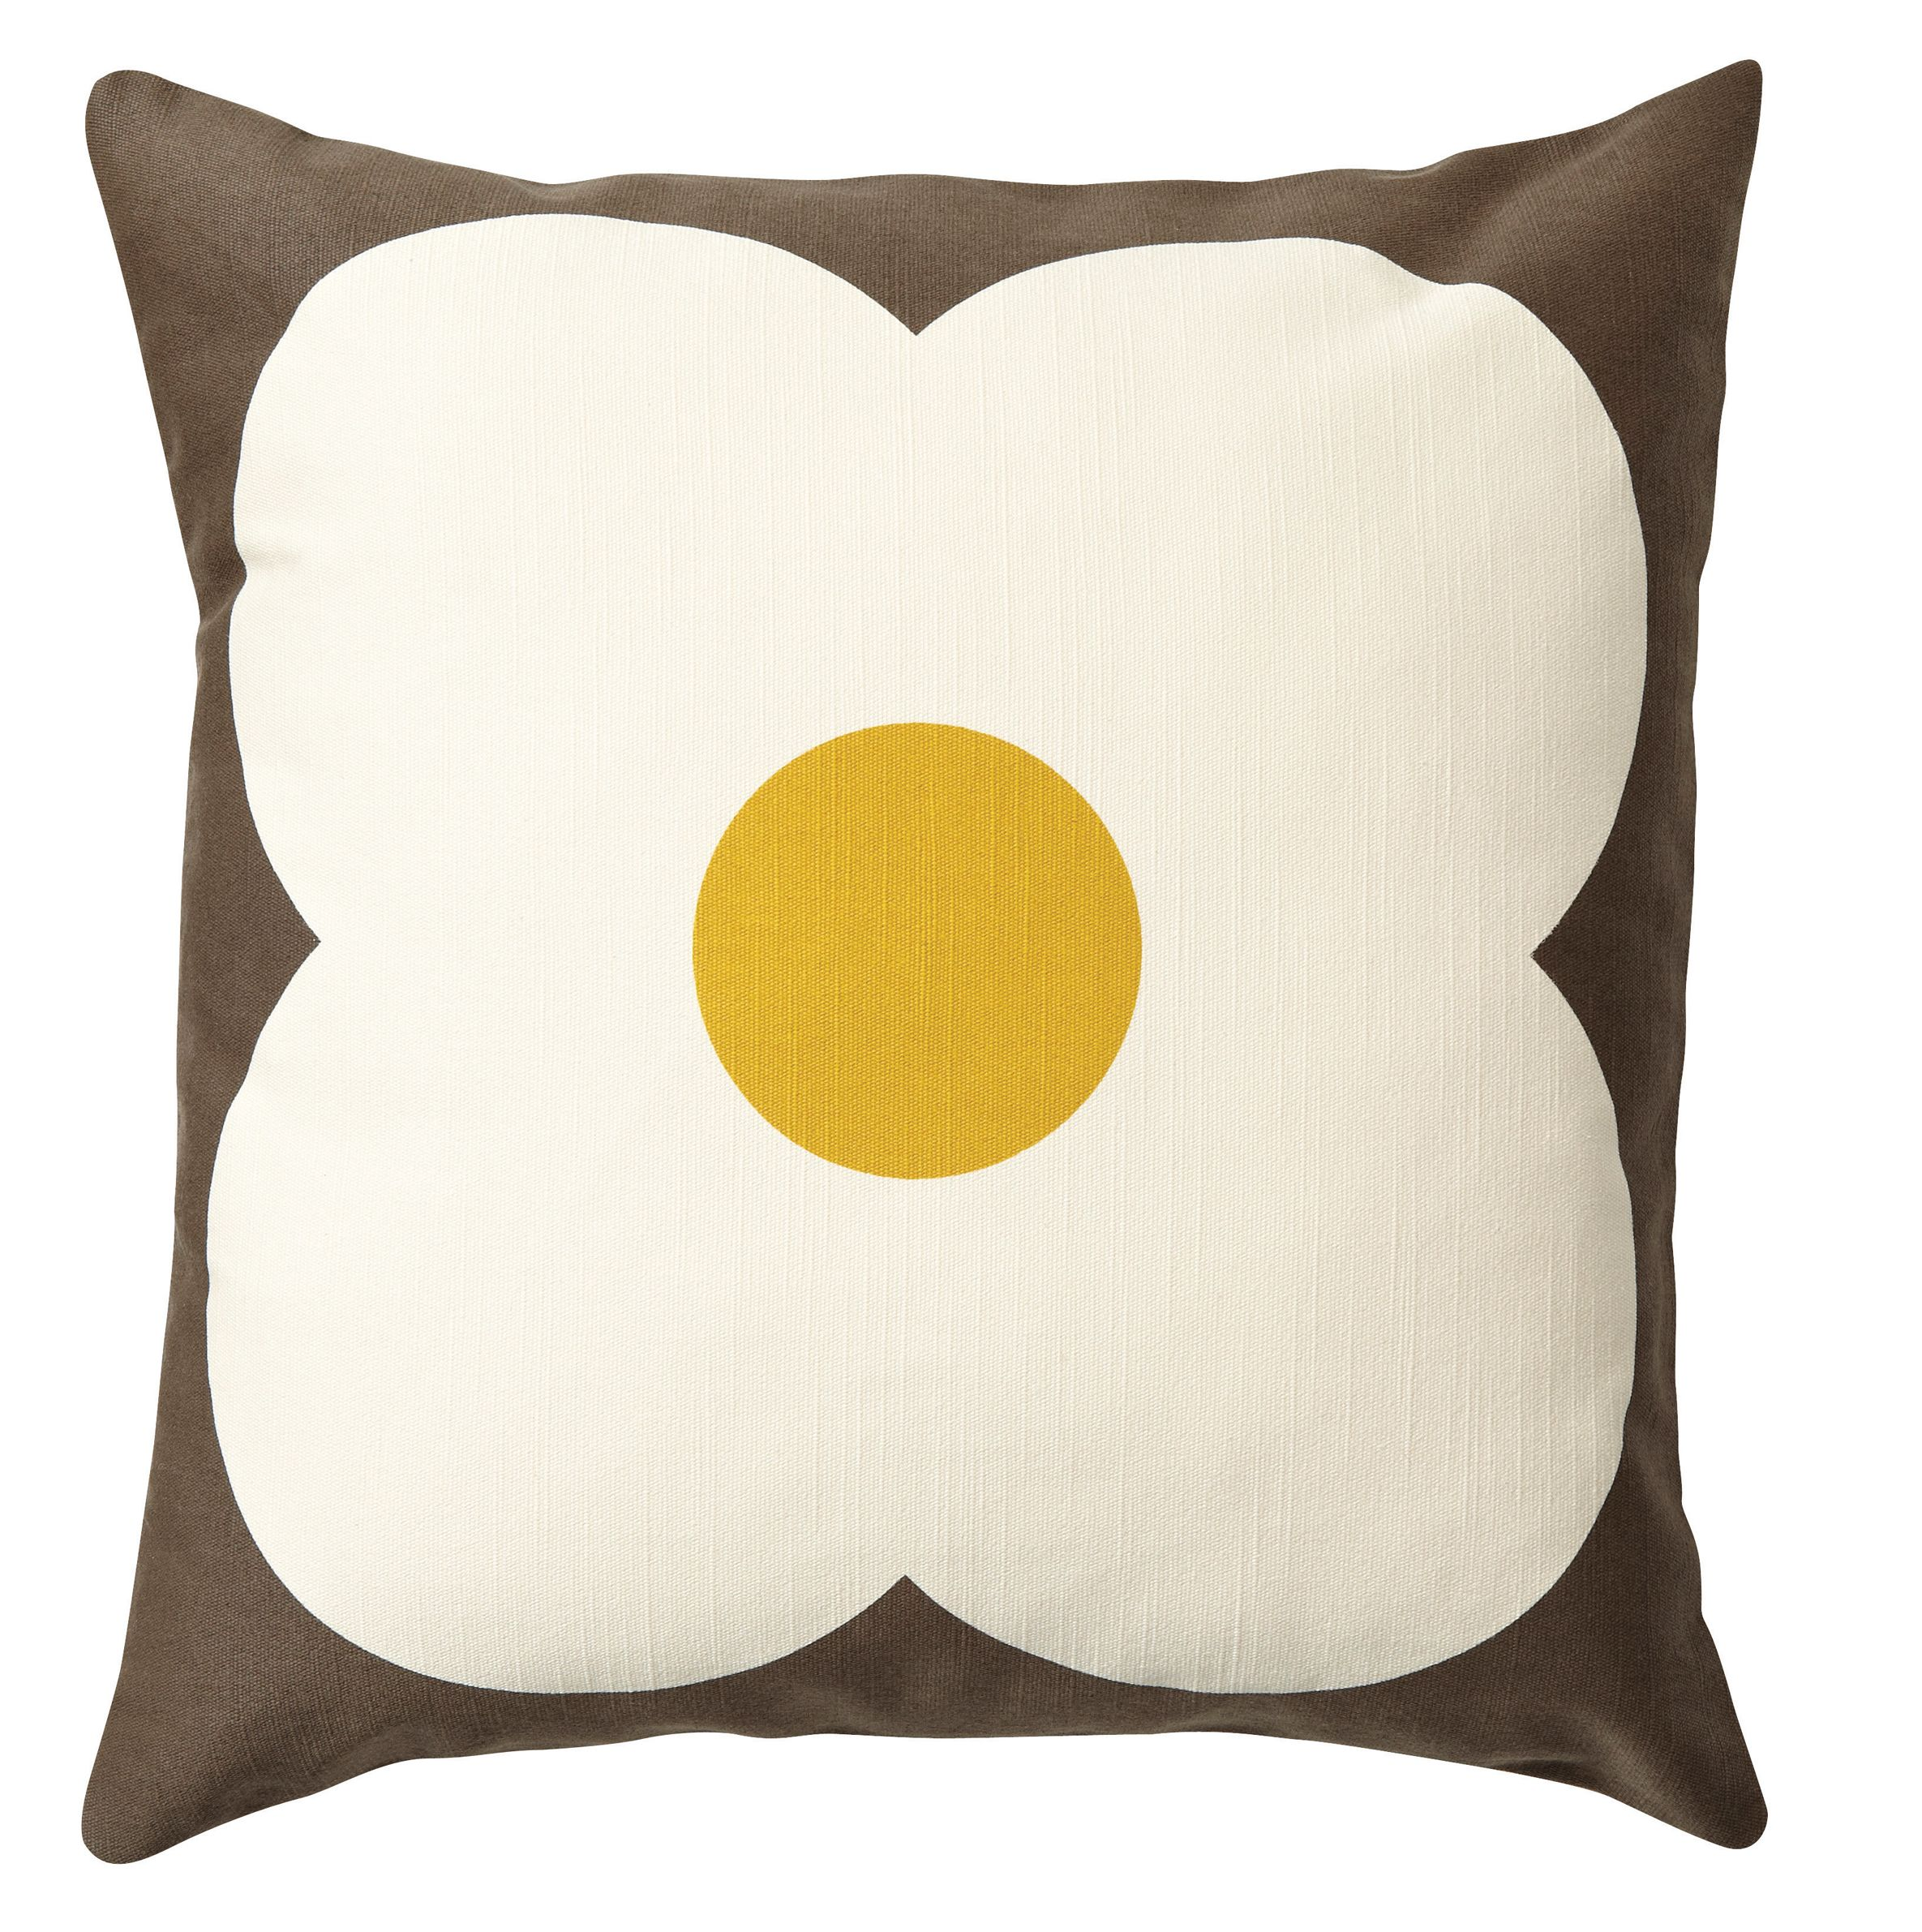 Orla Kiely Abacus Cushion Choc/Sunflower from Domayne